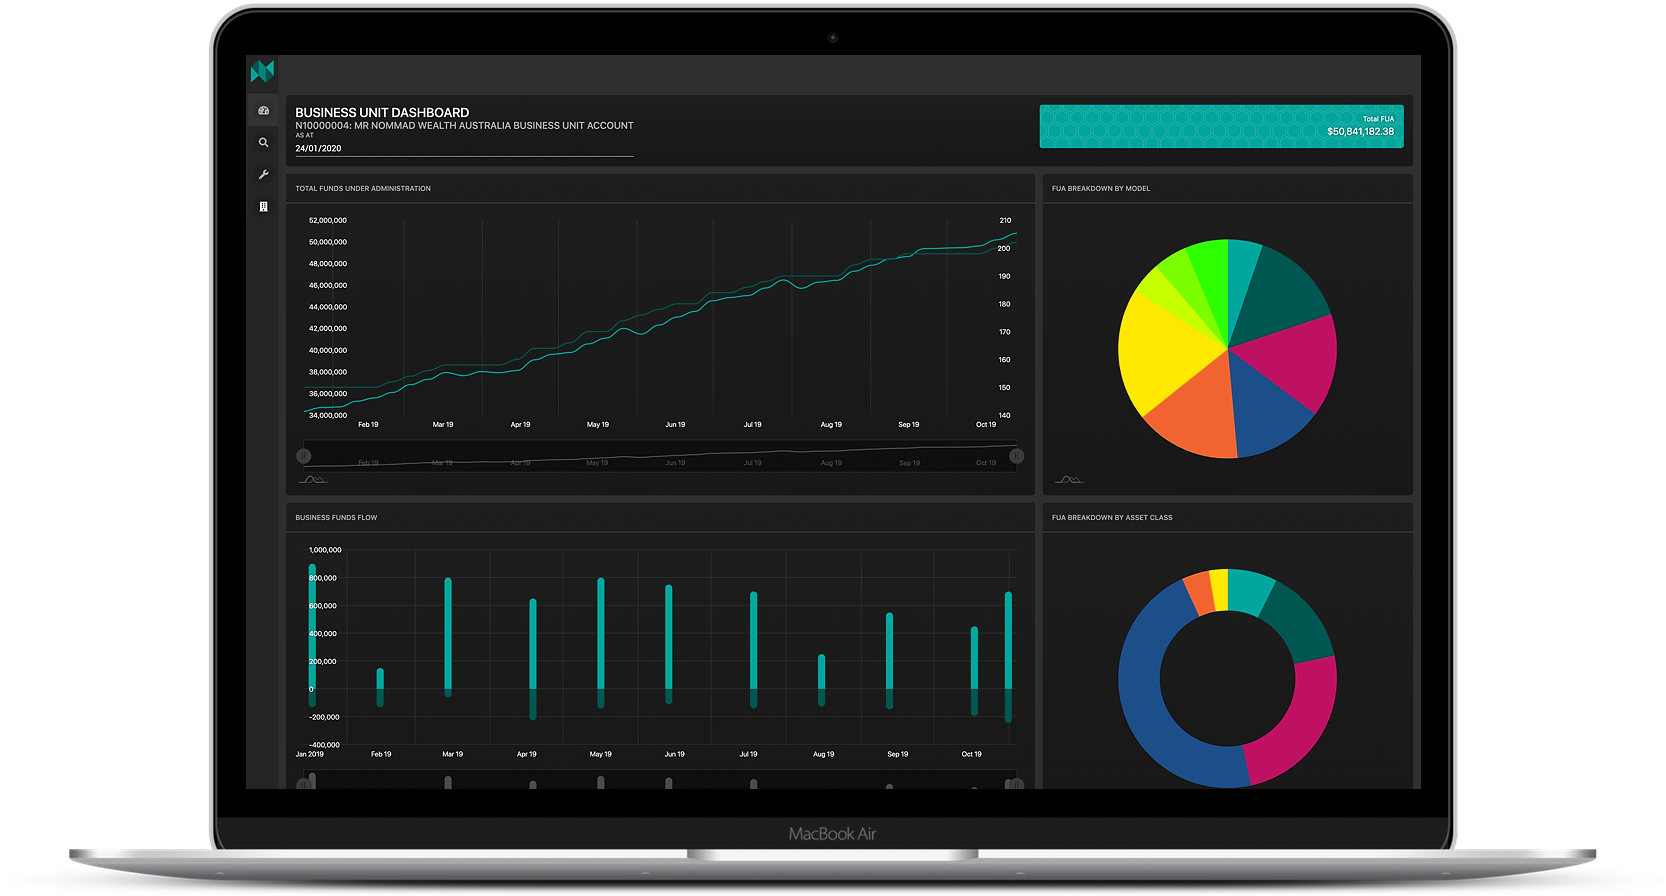 Picture of a laptop with the Nommad Business Dashboard